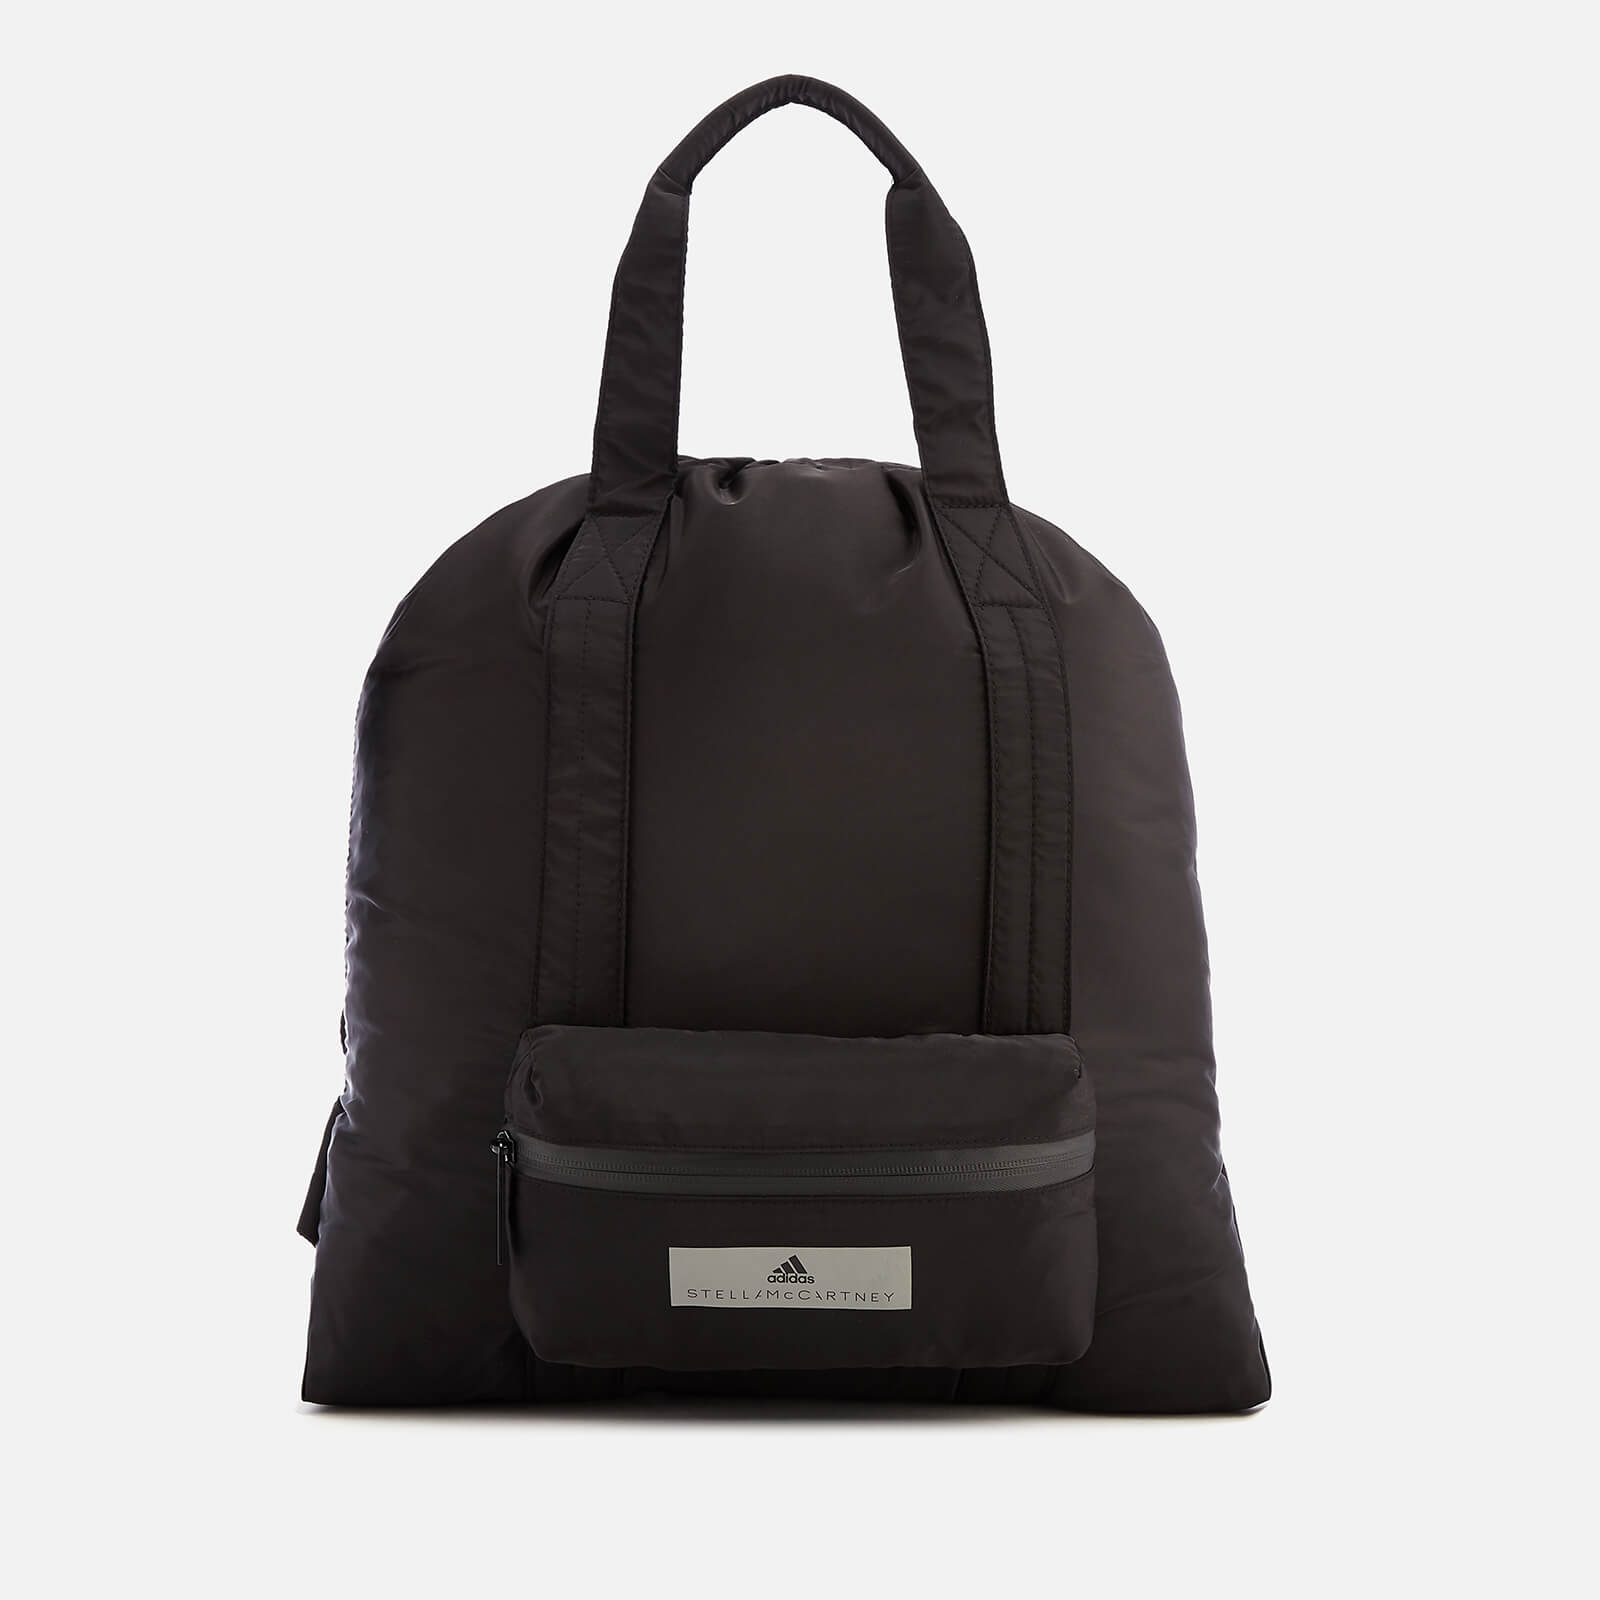 innovative design d35ac e3c8c adidas by Stella McCartney Women s Gym Sack Bag - Black Black - Free UK  Delivery over £50